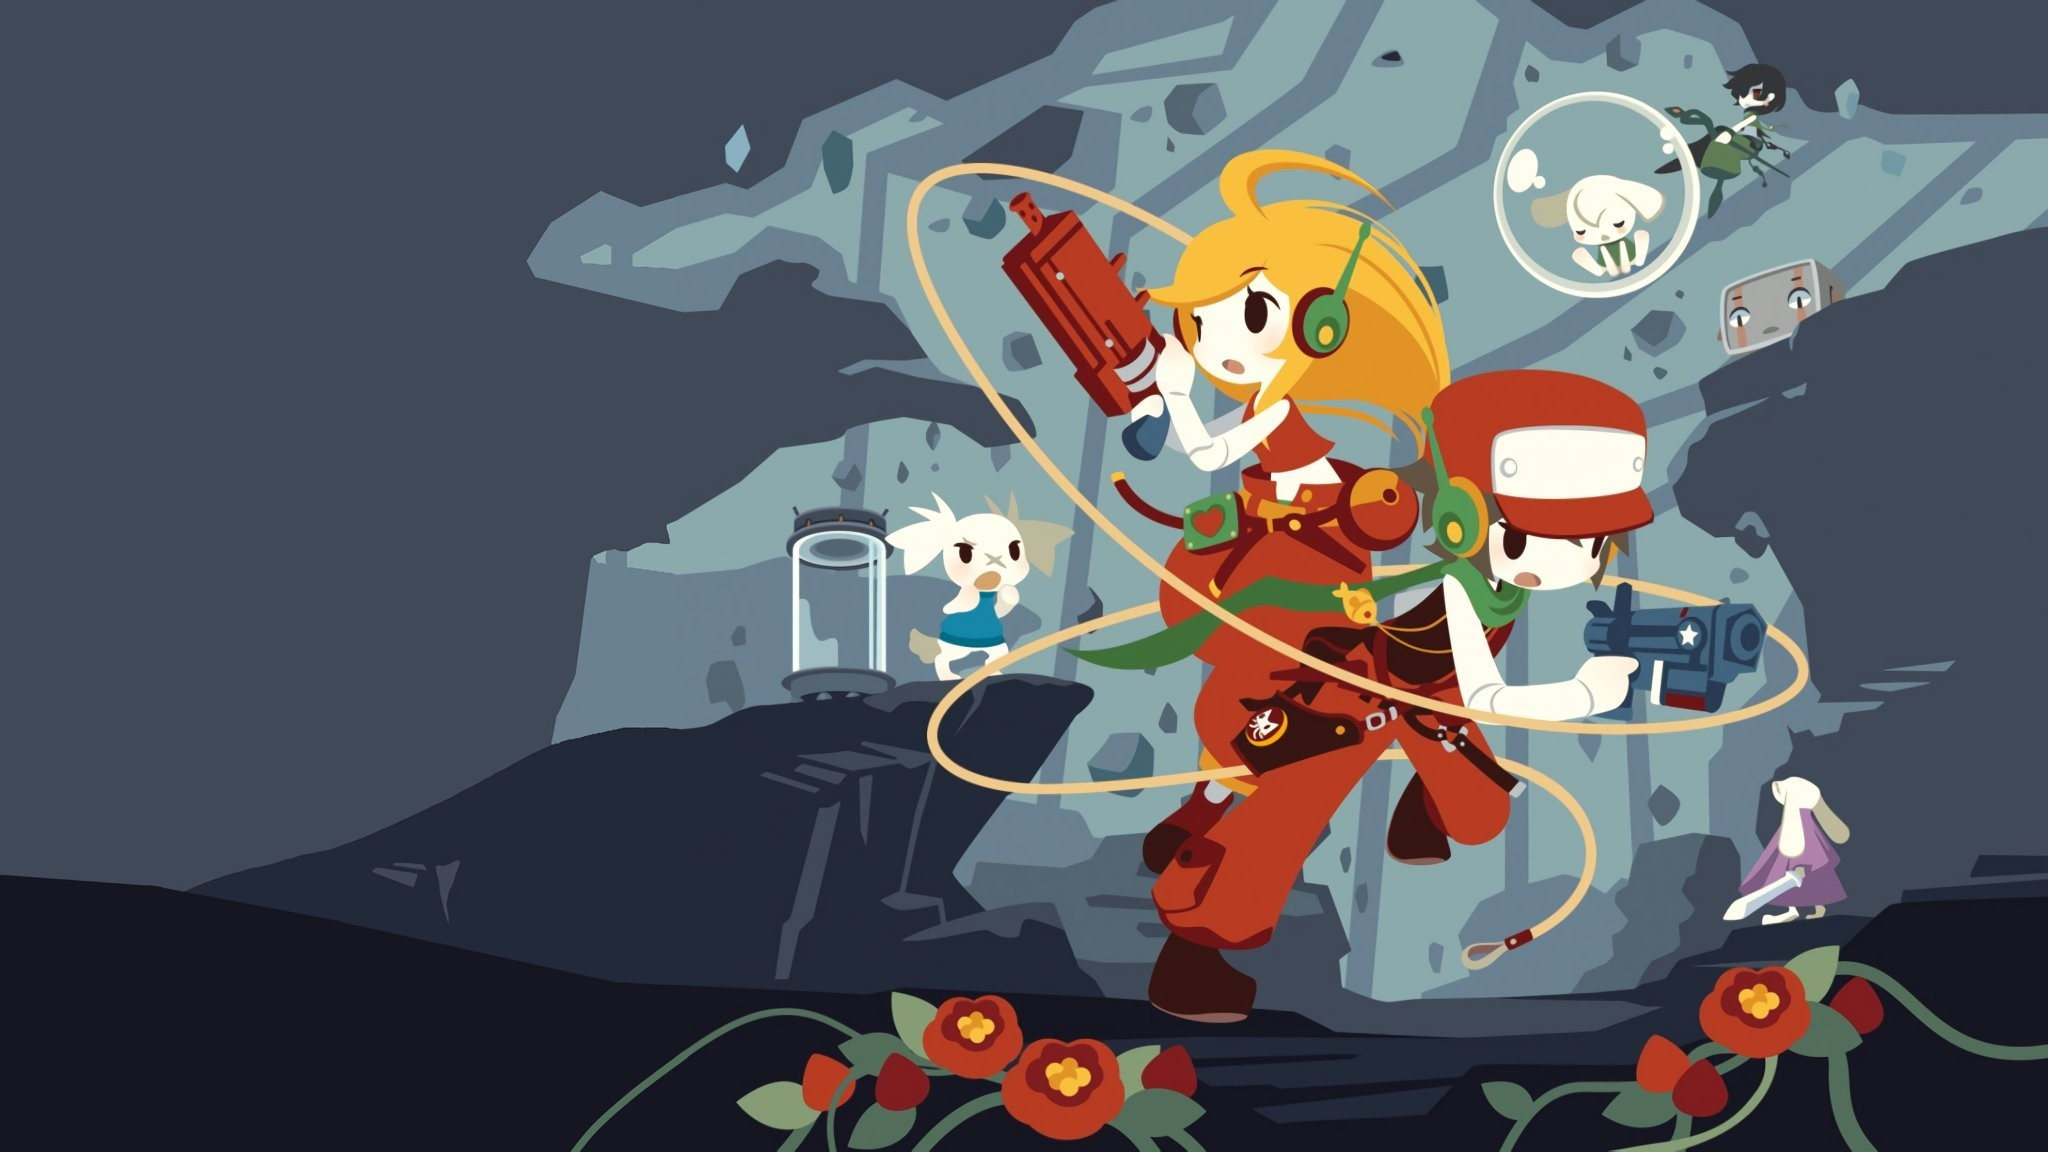 2048x1152 Cave Story HD Wallpapers